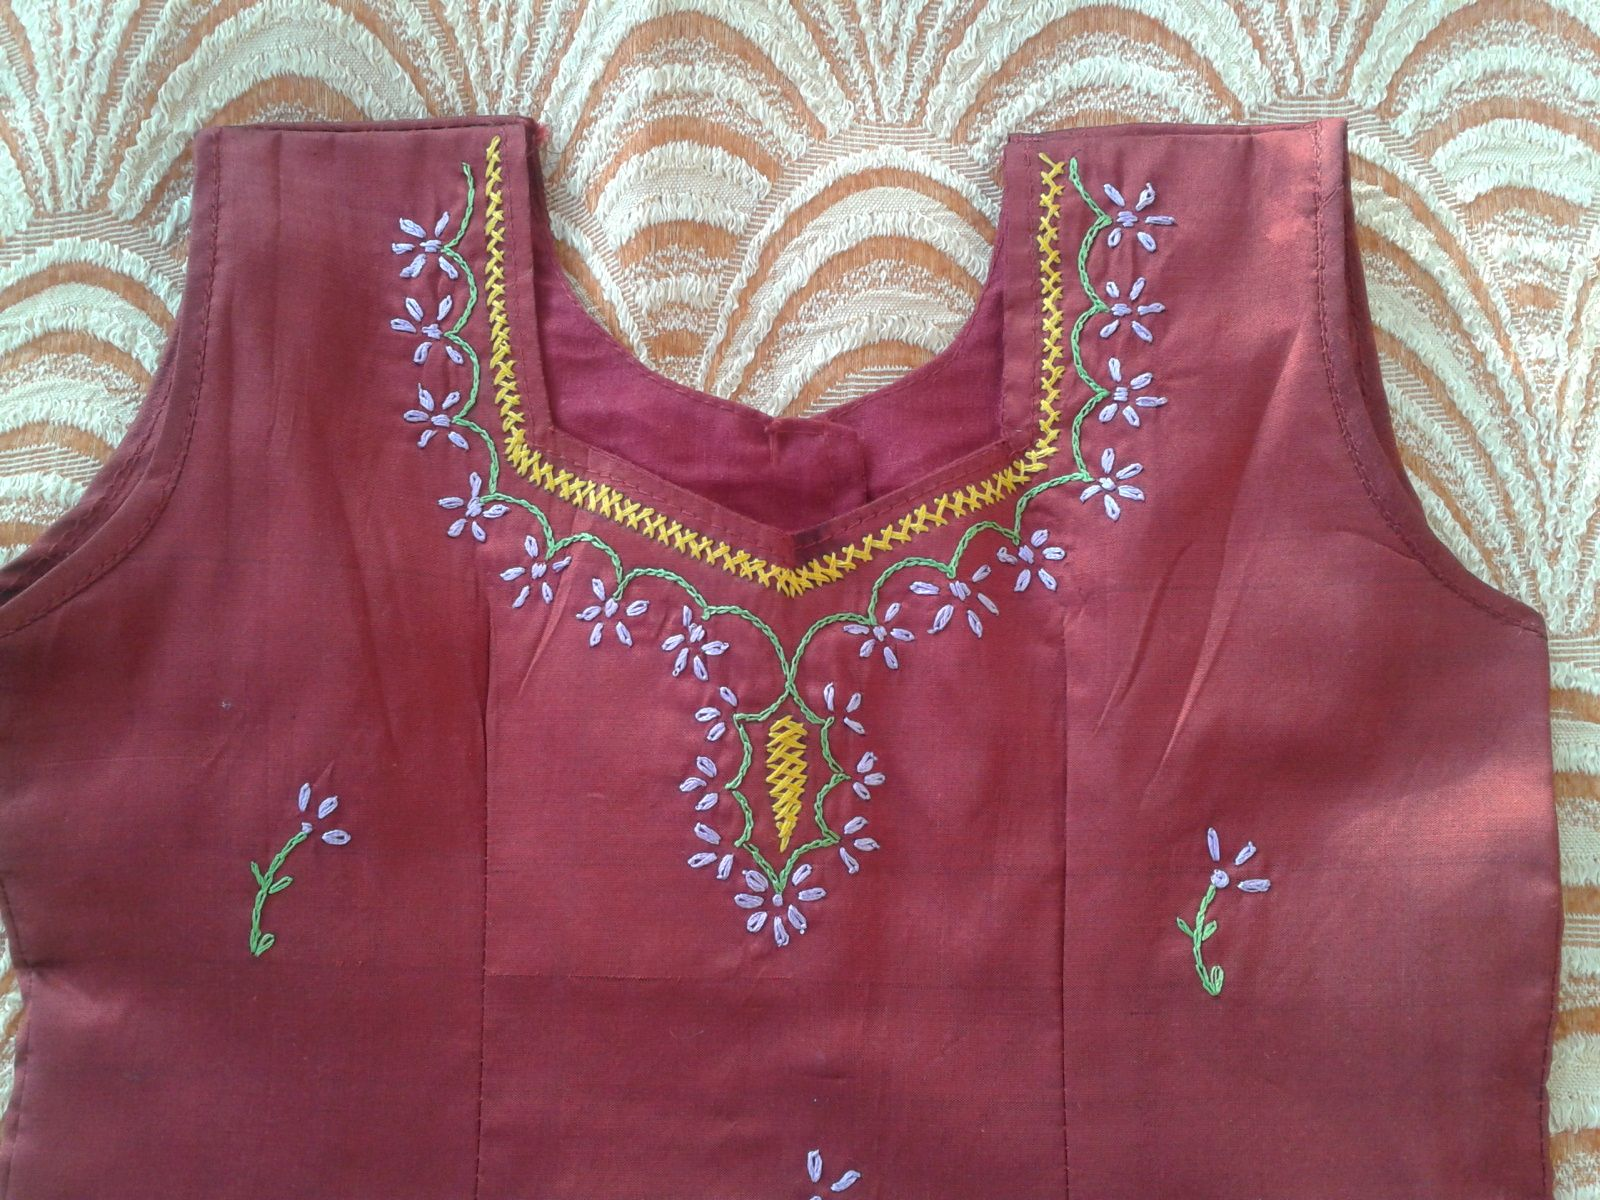 Simple hand embroidery designs for blouse imgkid